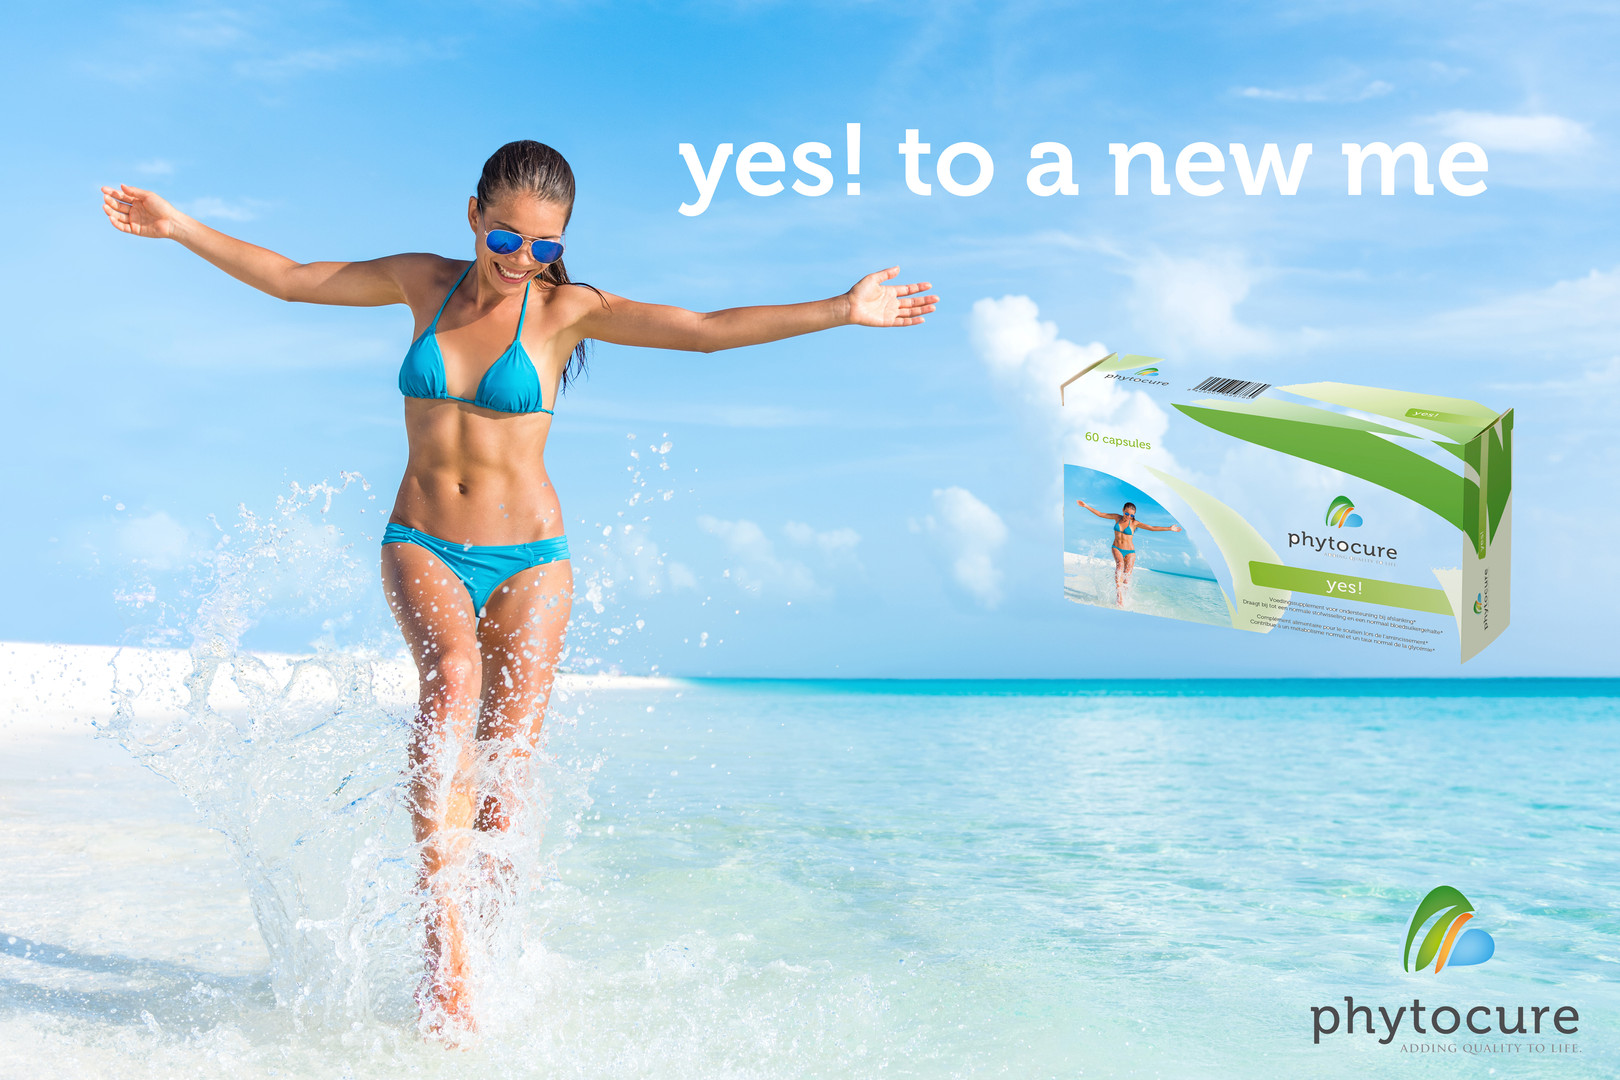 Yes! to a new me - Phytocure.jpg